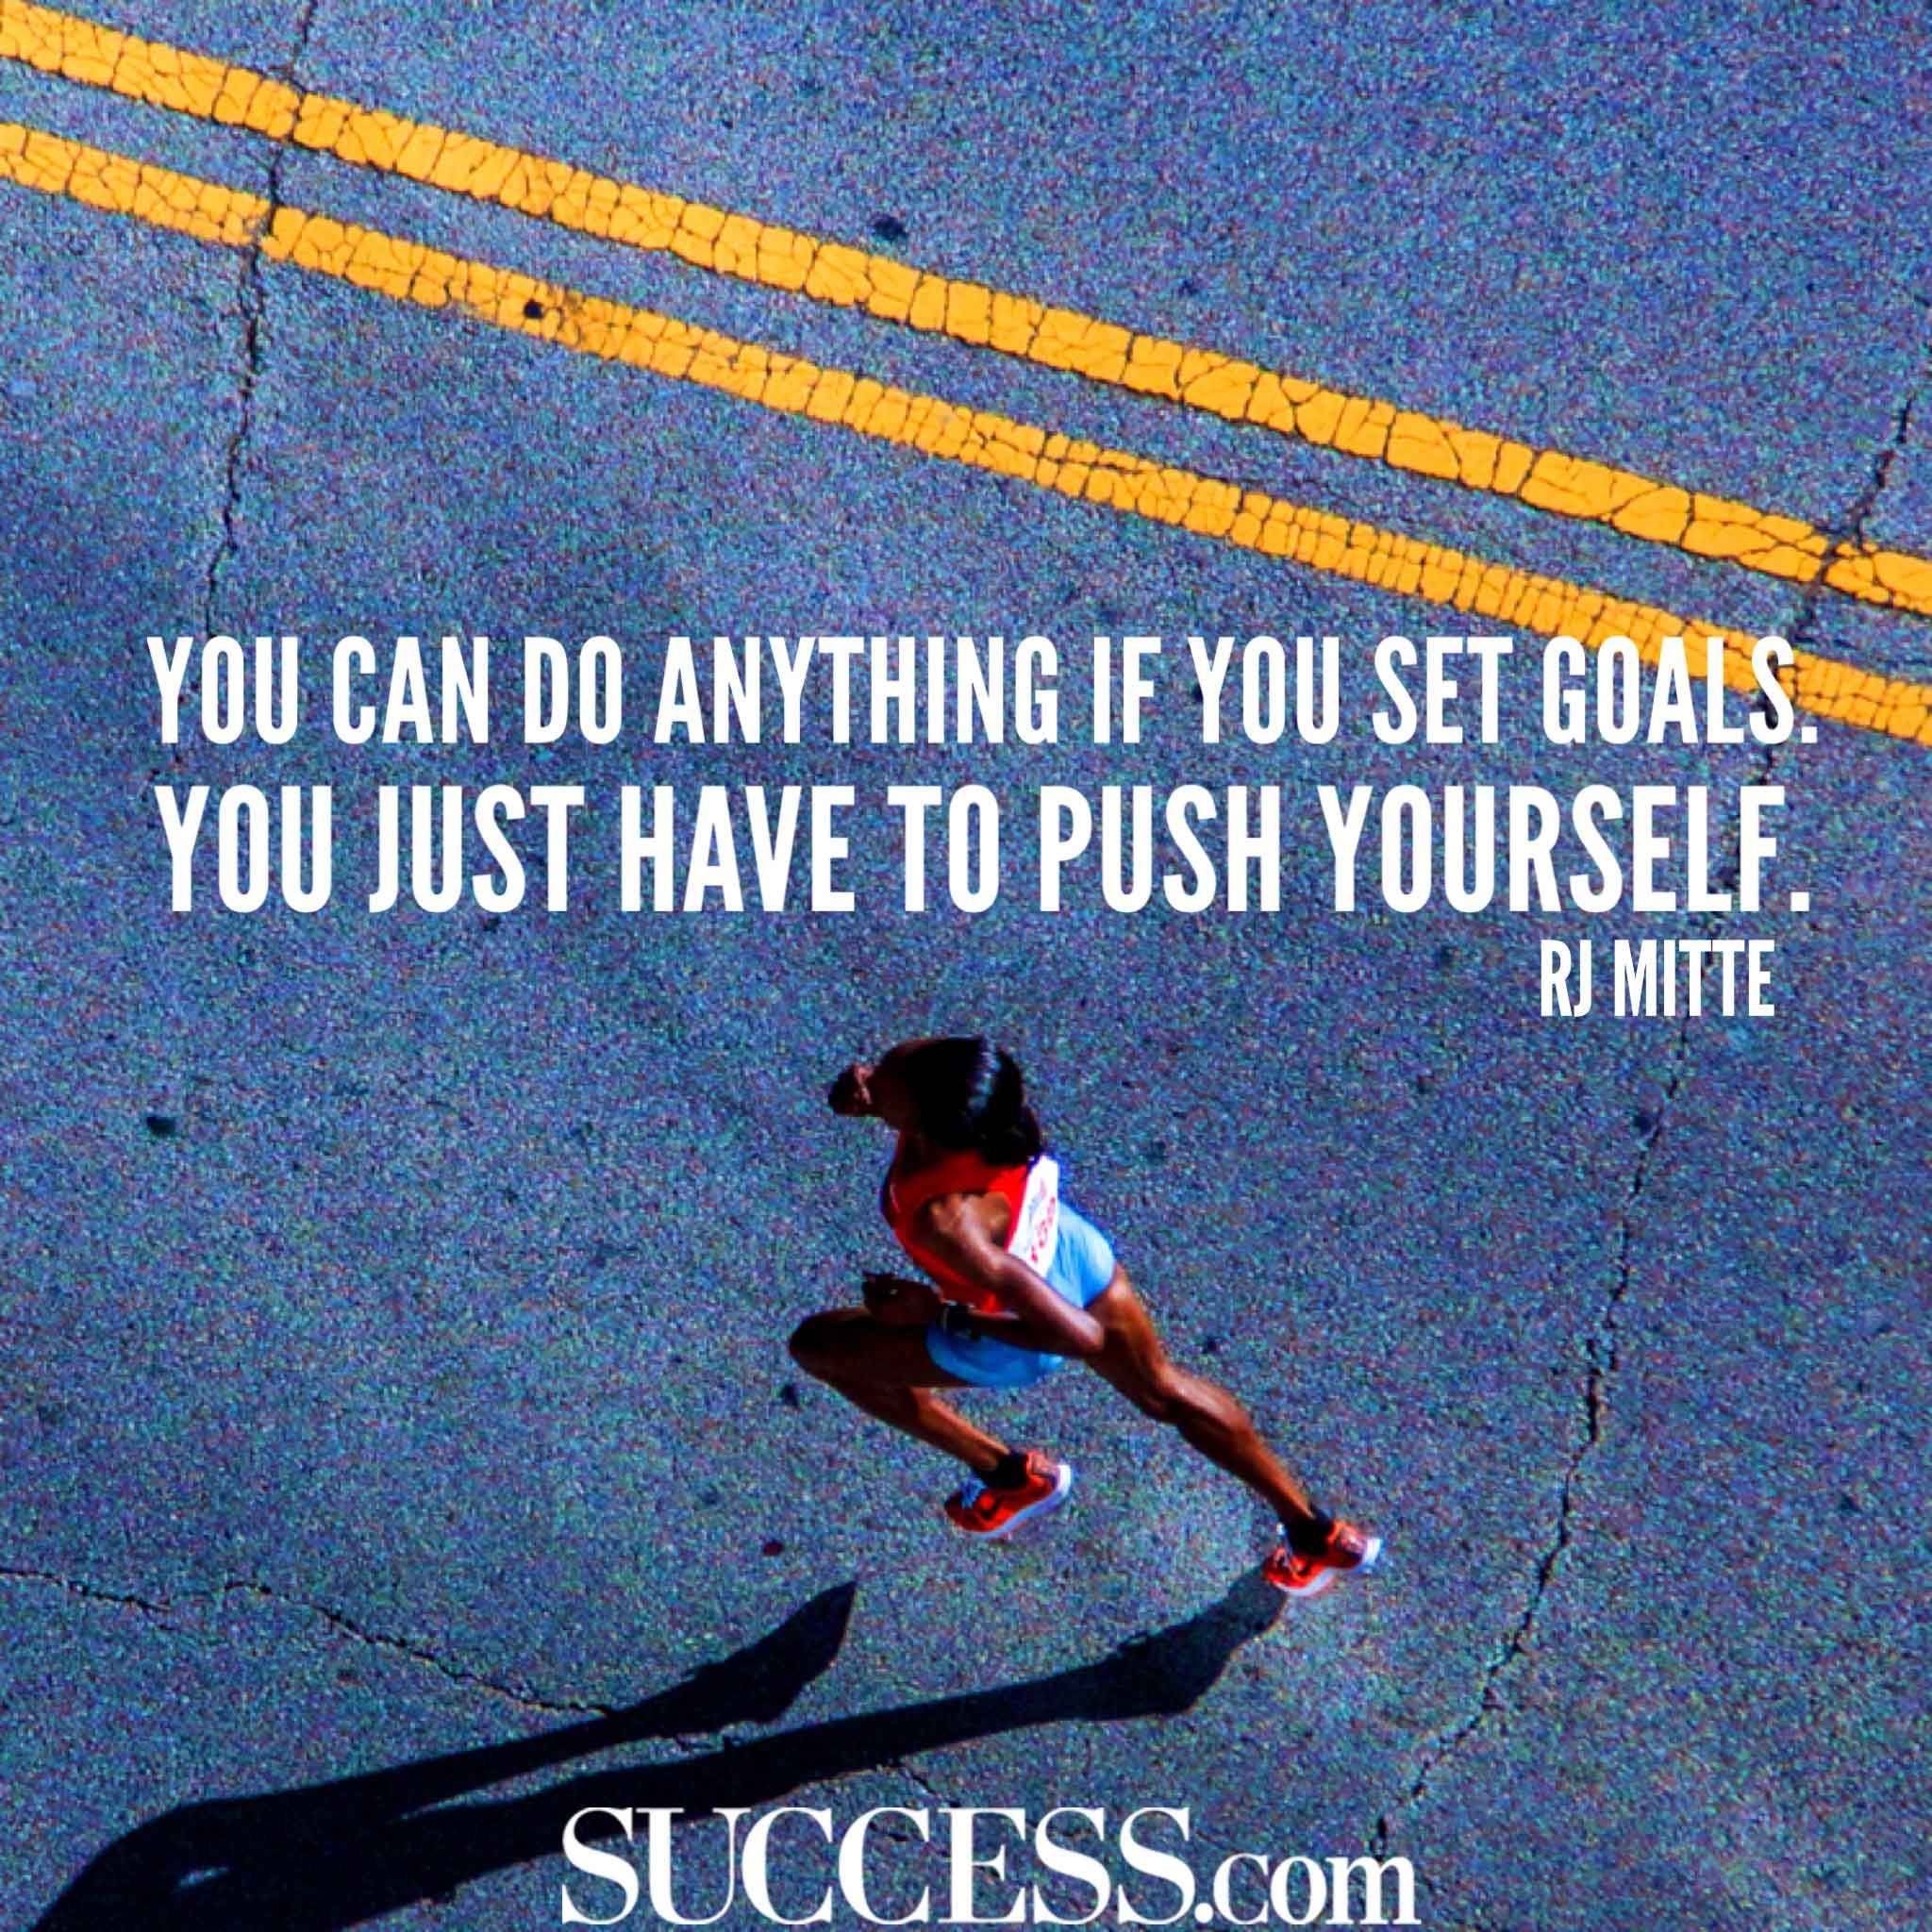 18 Motivational Quotes About Successful Goal Setting Motivational Quotes Goals Motivation